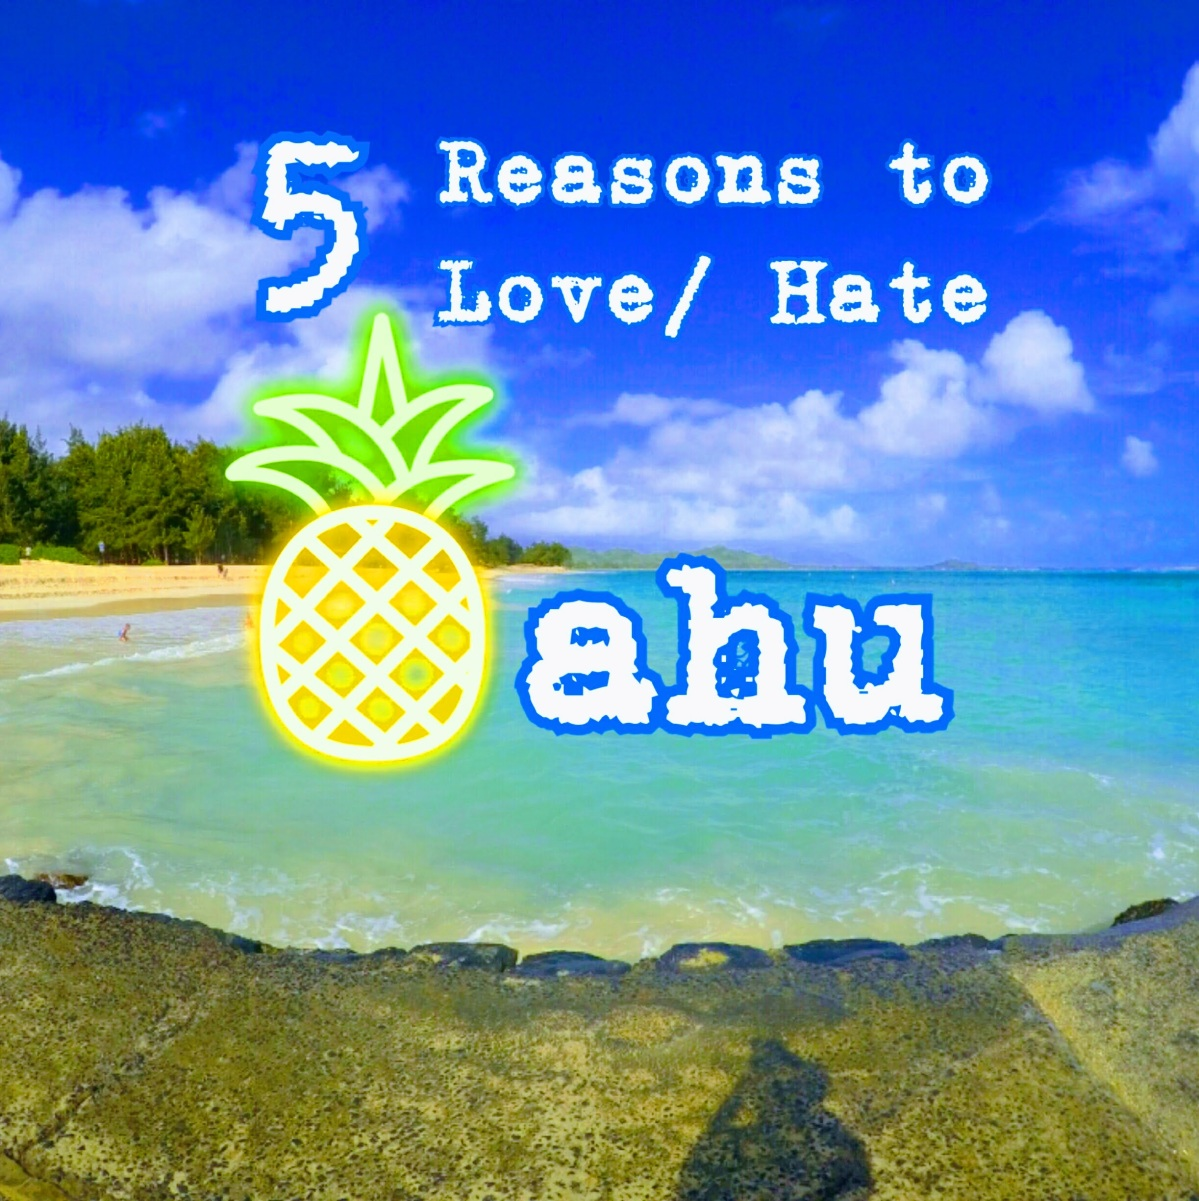 5 Reasons to Love/Hate Oahu